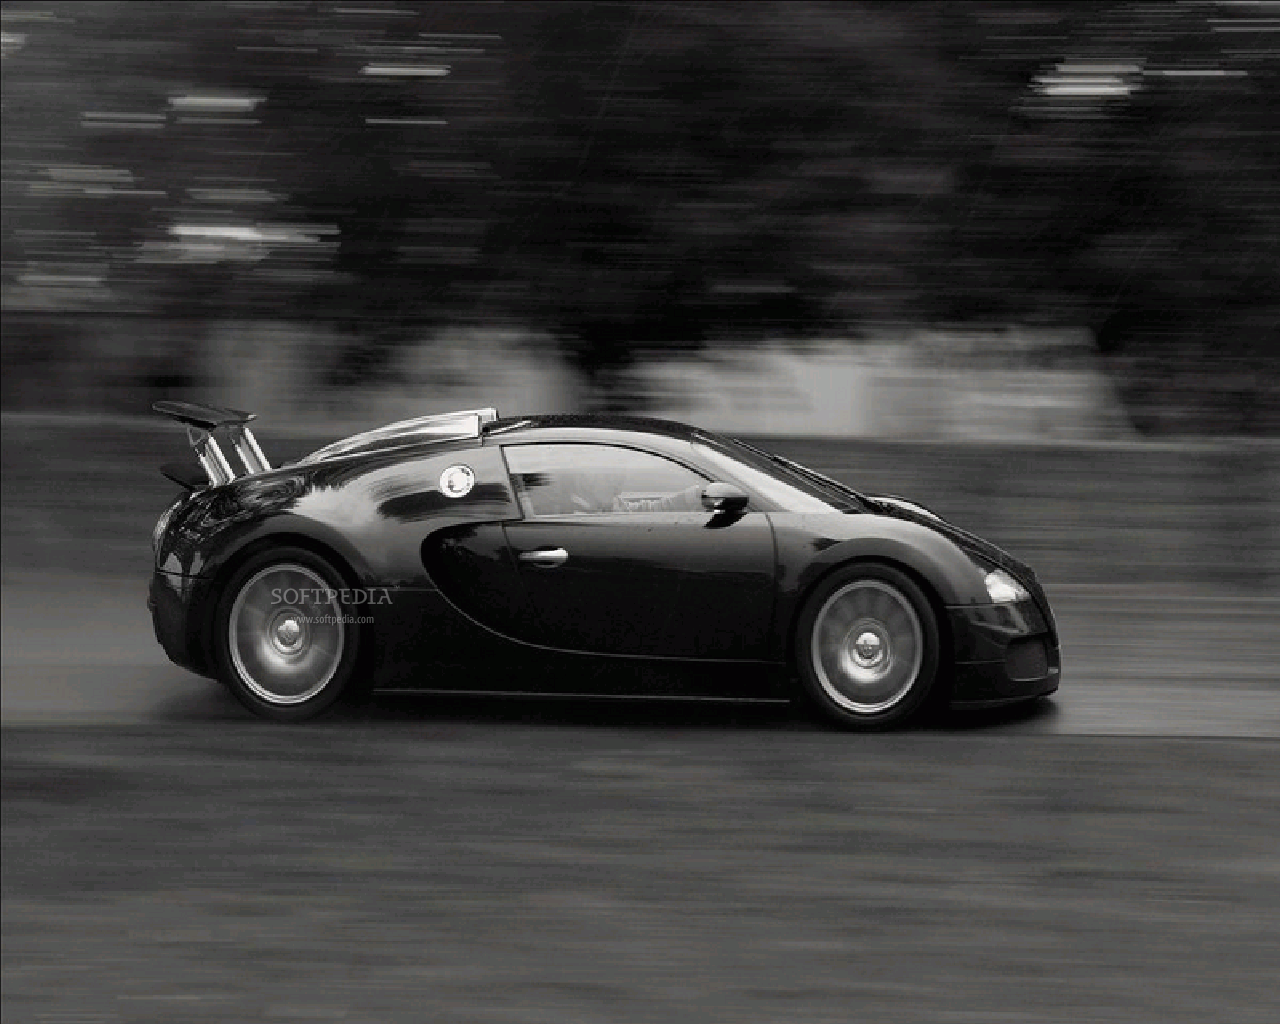 """Freebking Bugatti Screensaver"